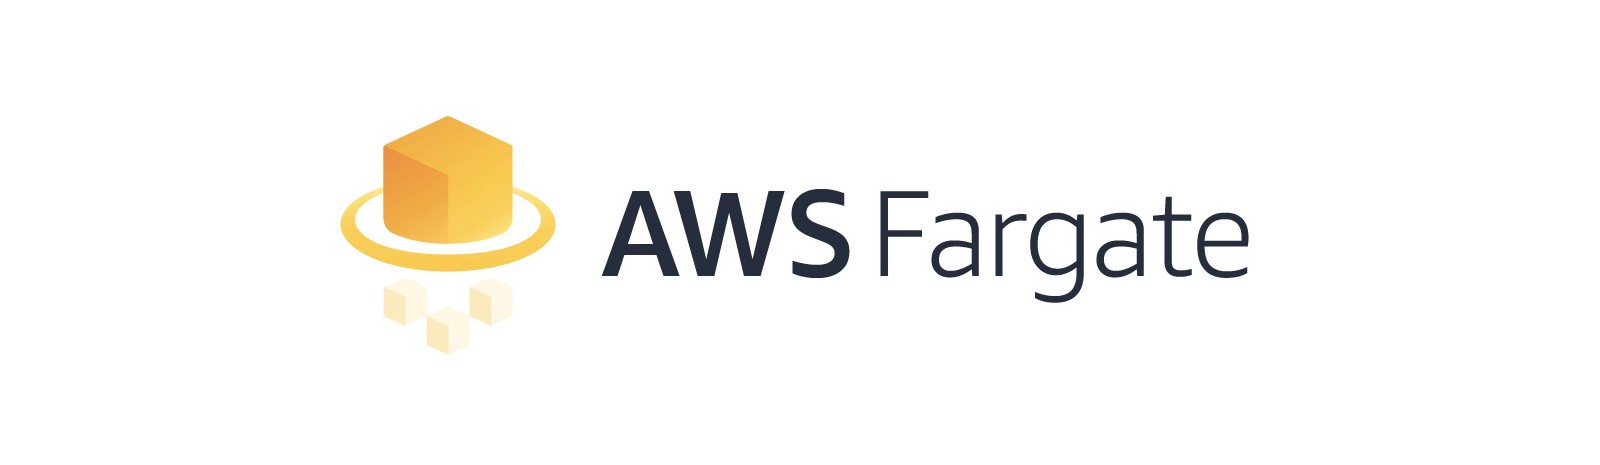 Create a scheduled (cron-like) task in AWS Fargate - Hengf